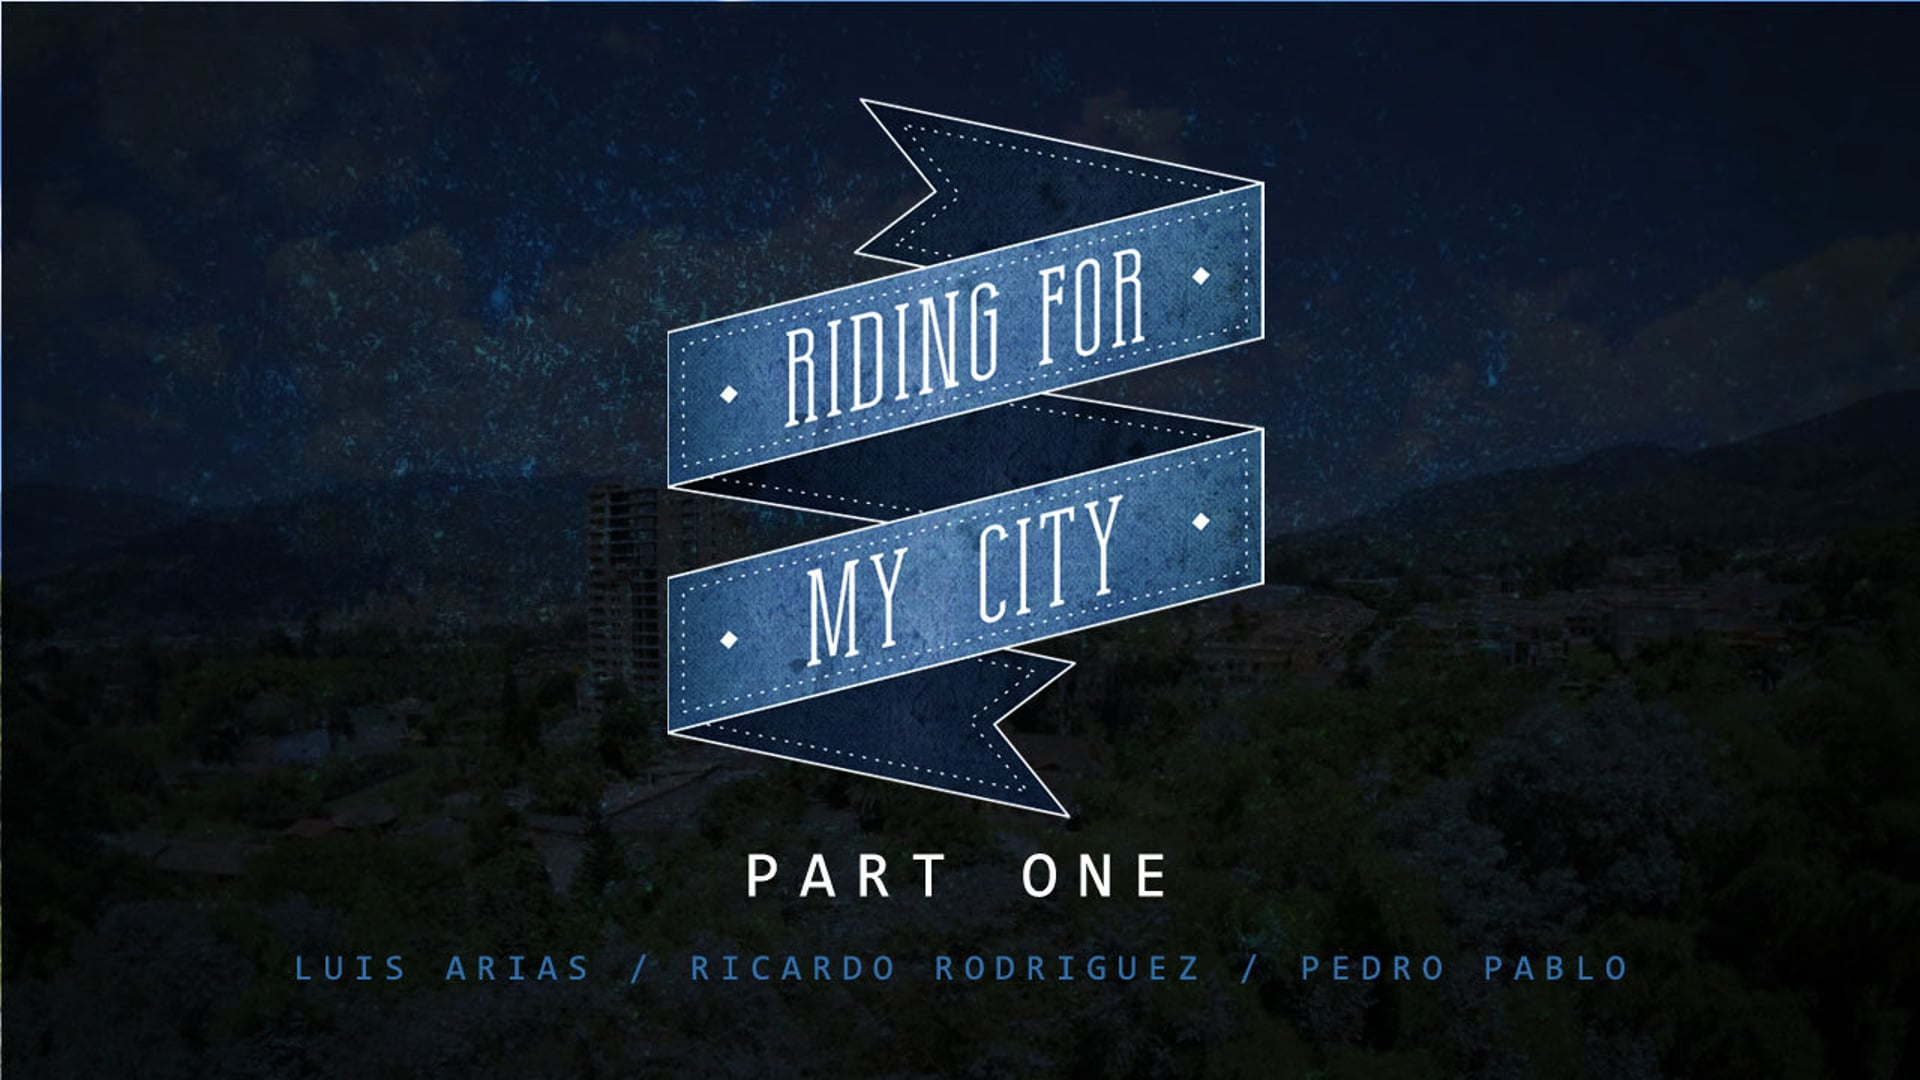 PART ONE - RIDING FOR MY CITY - MUTANTY BIKE CO